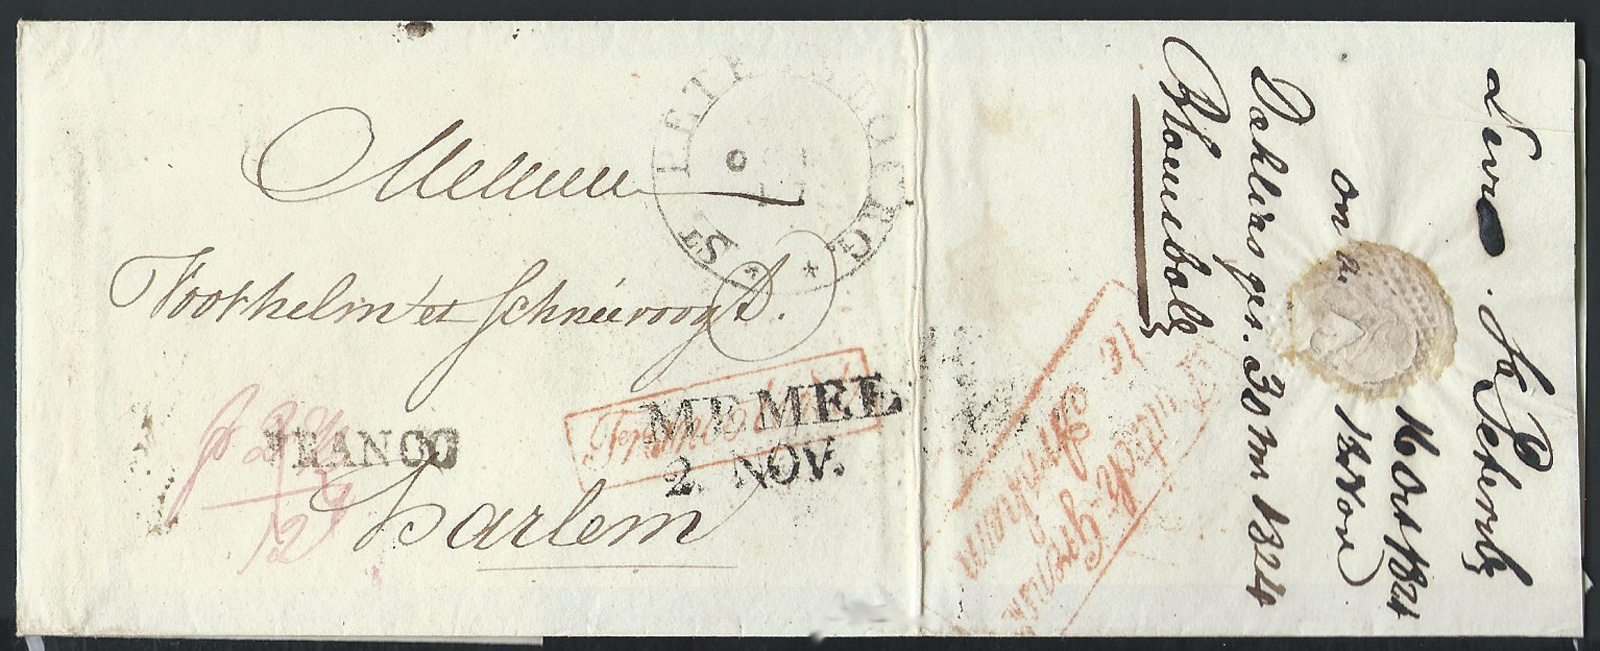 RUSSIA  1824 Outer letter sheet posted to Harlem (Netherlands) stamped by large double circle  Latin script �ST.PETERSSBOURG ** � cds, alongside transit MEMEL and red boxed �Franco Tout� handstamp. Reverse shows border entry mark � Duitsch � Grensk / te Arnhem�.  Charged 12 decimes in manuscript. Nice and attractive